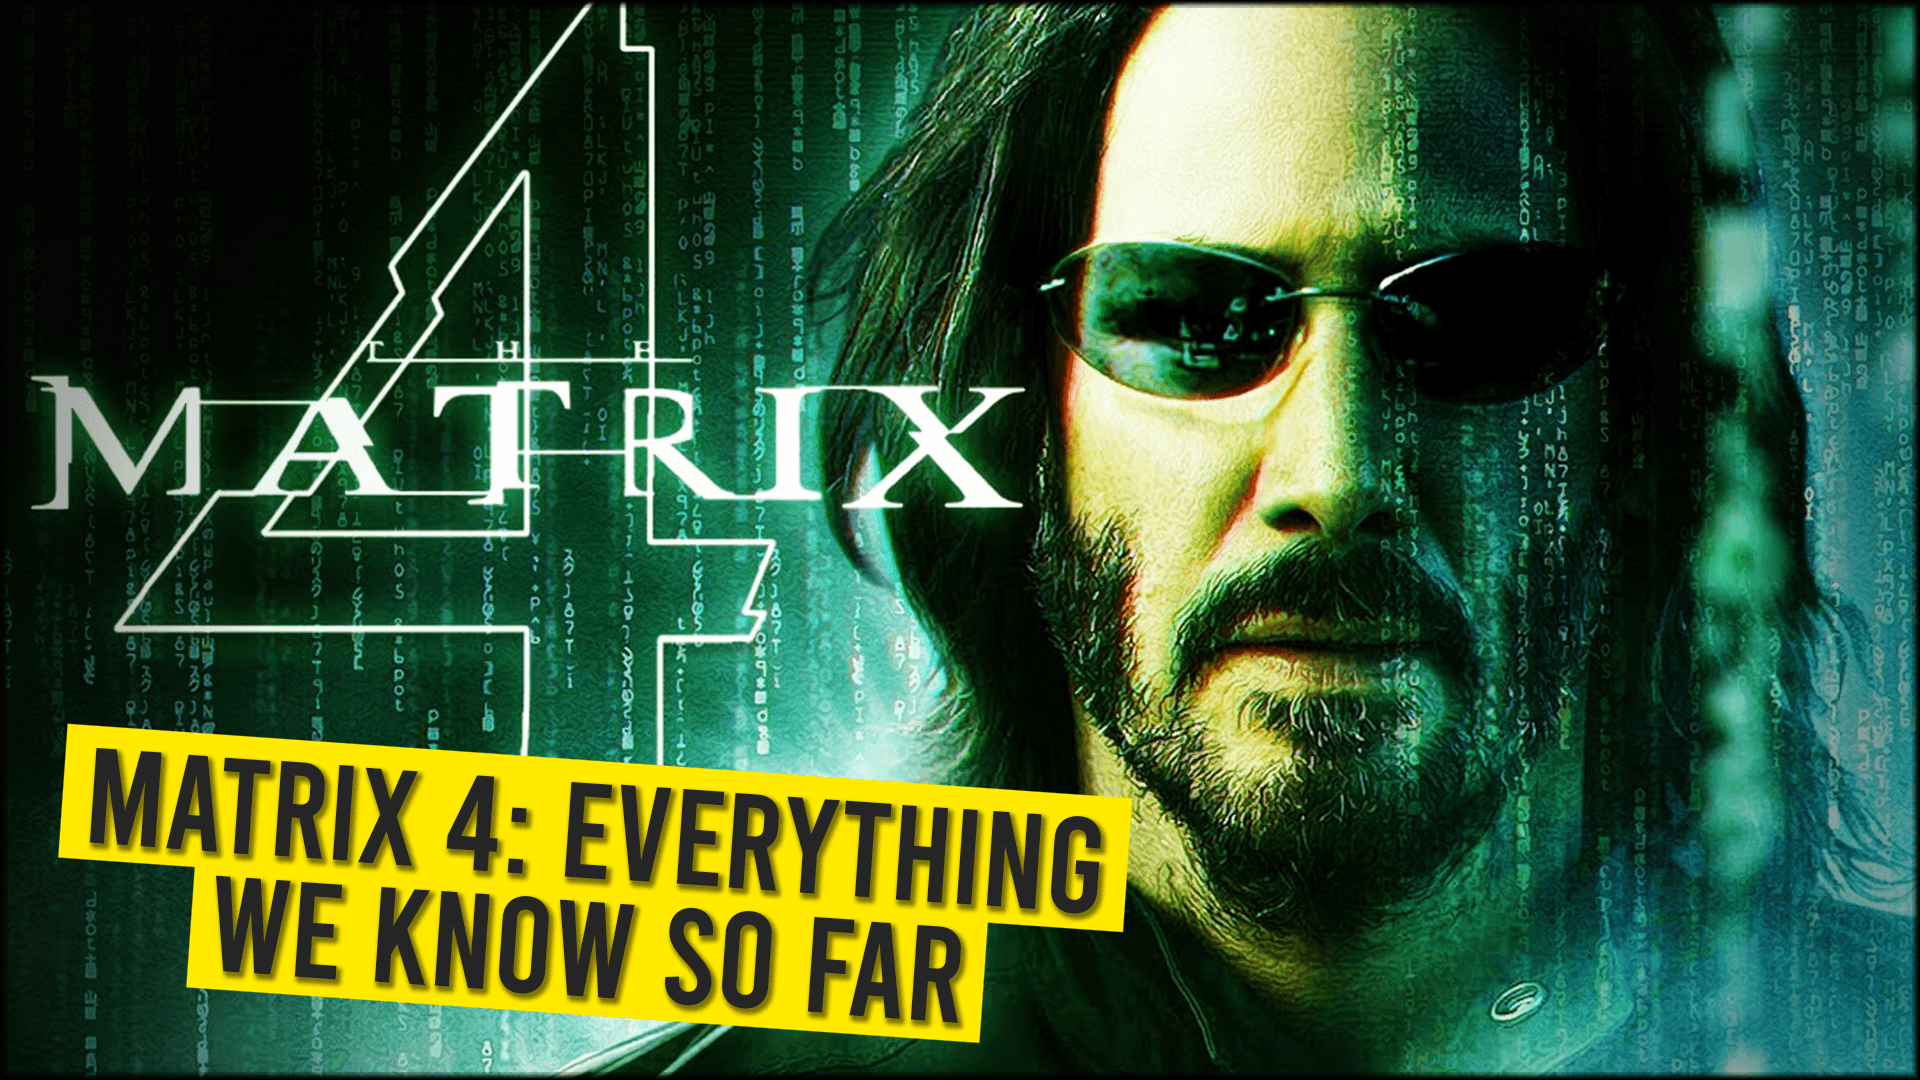 MAtrix 4: Everything We Know So Far